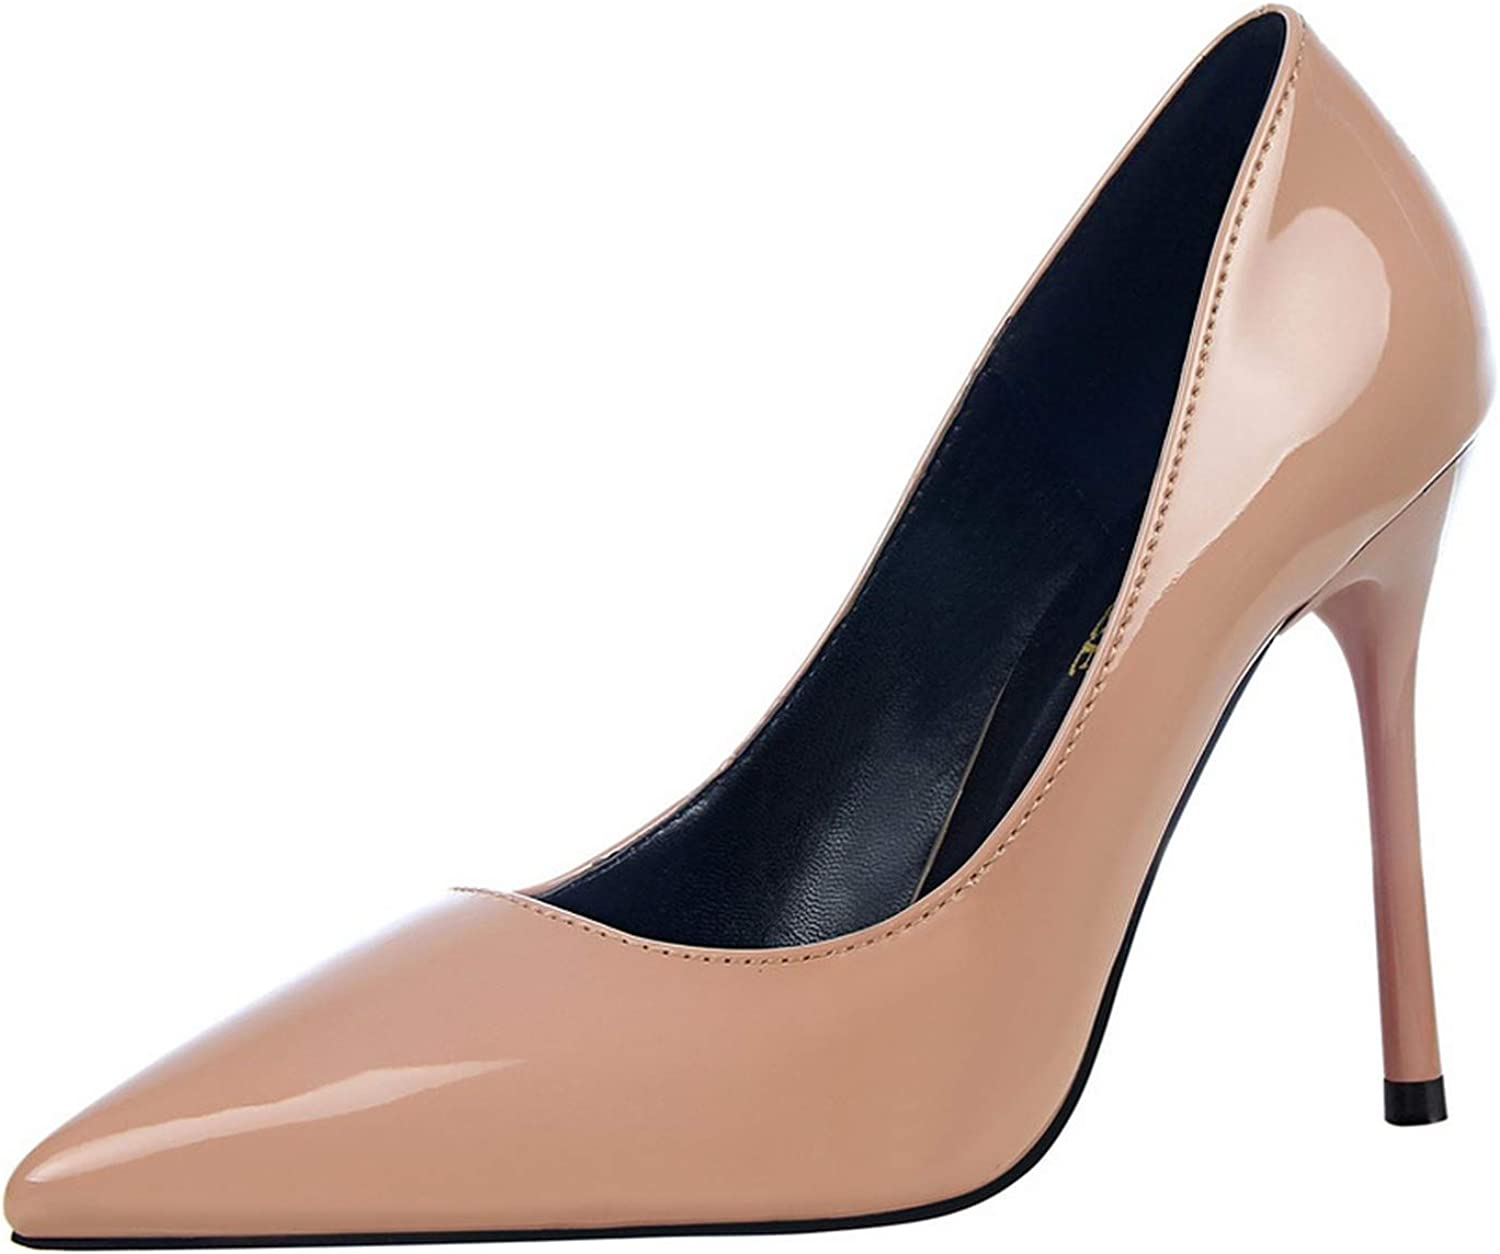 High Heels New Women shoes Patent Leather Heels Sexy Women Pumps Fashion Office shoes Wedding shoes